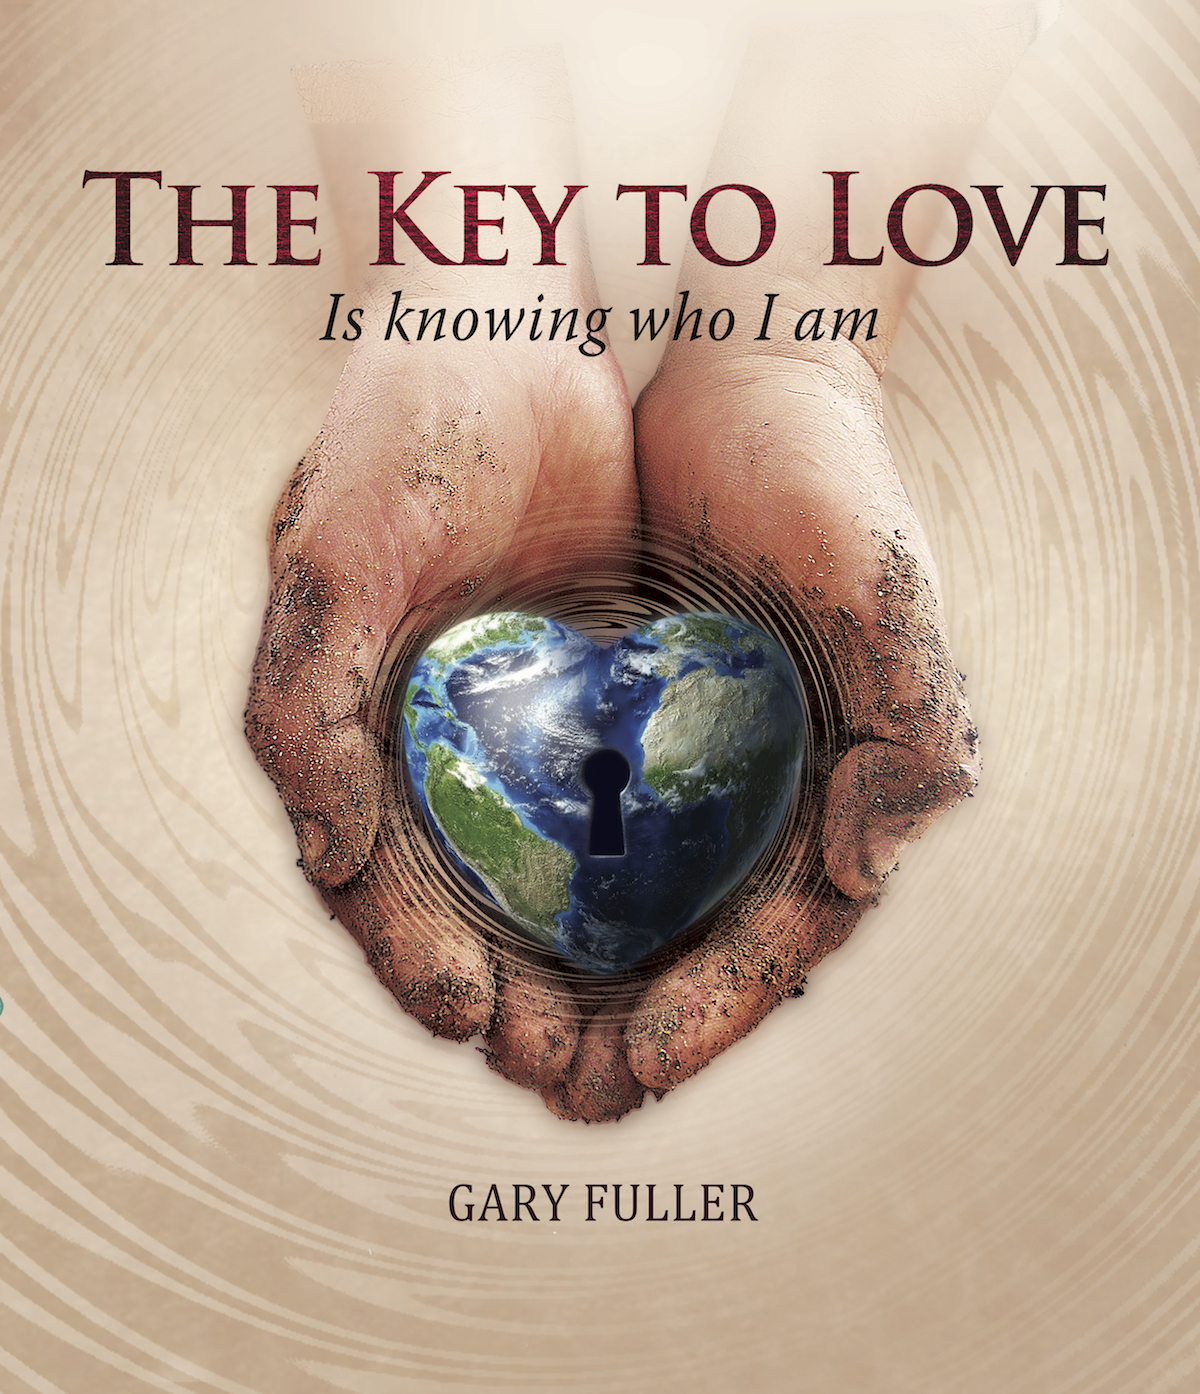 THE KEY TO LOVE COVER COMPLET FINAL.jpg